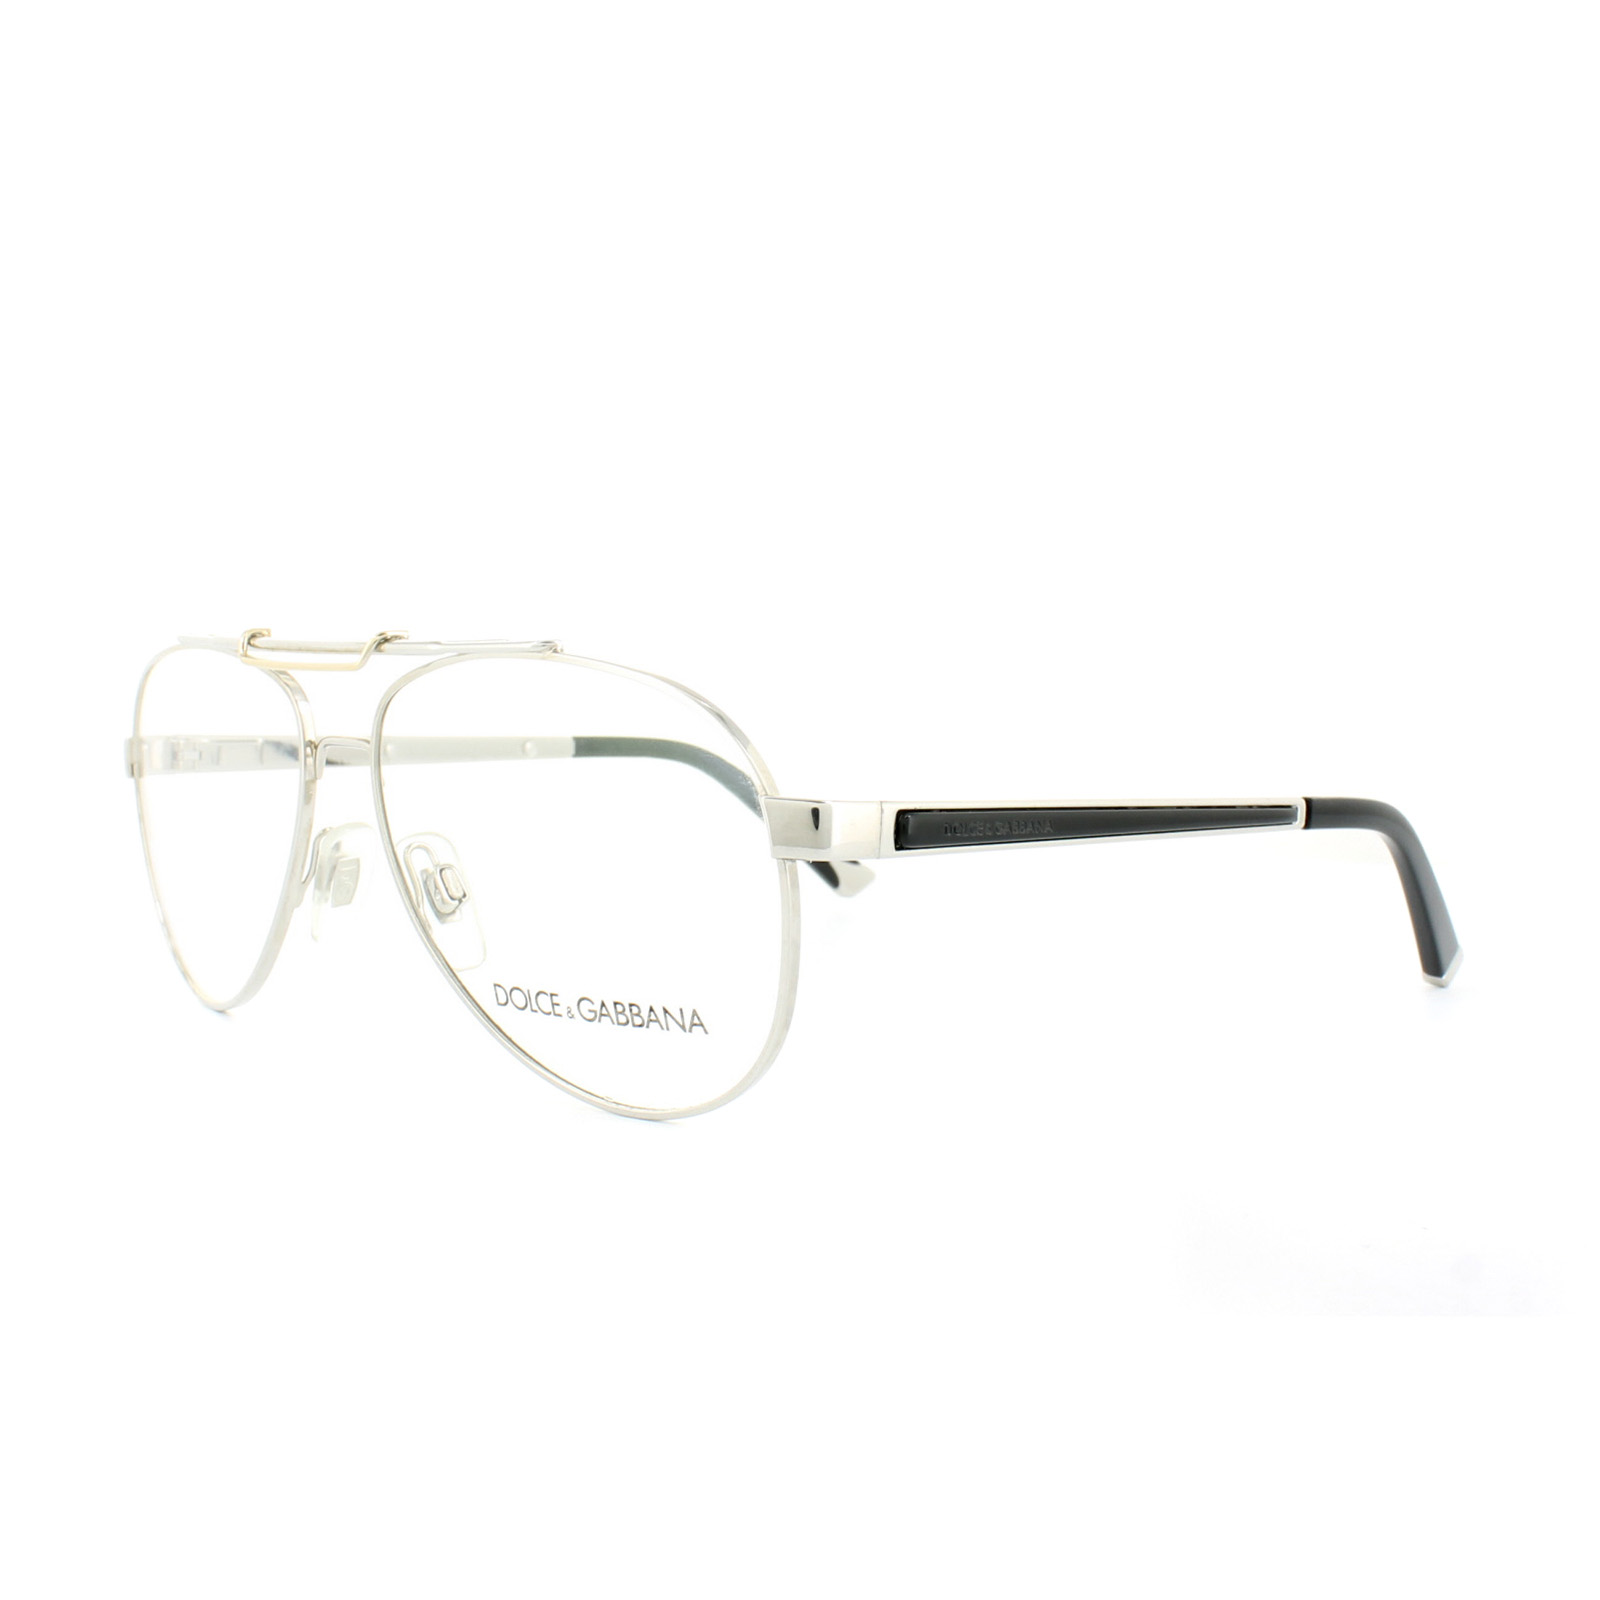 Dolce and Gabbana Glasses Frames DG 1223 05 Silver Mens 56mm ...